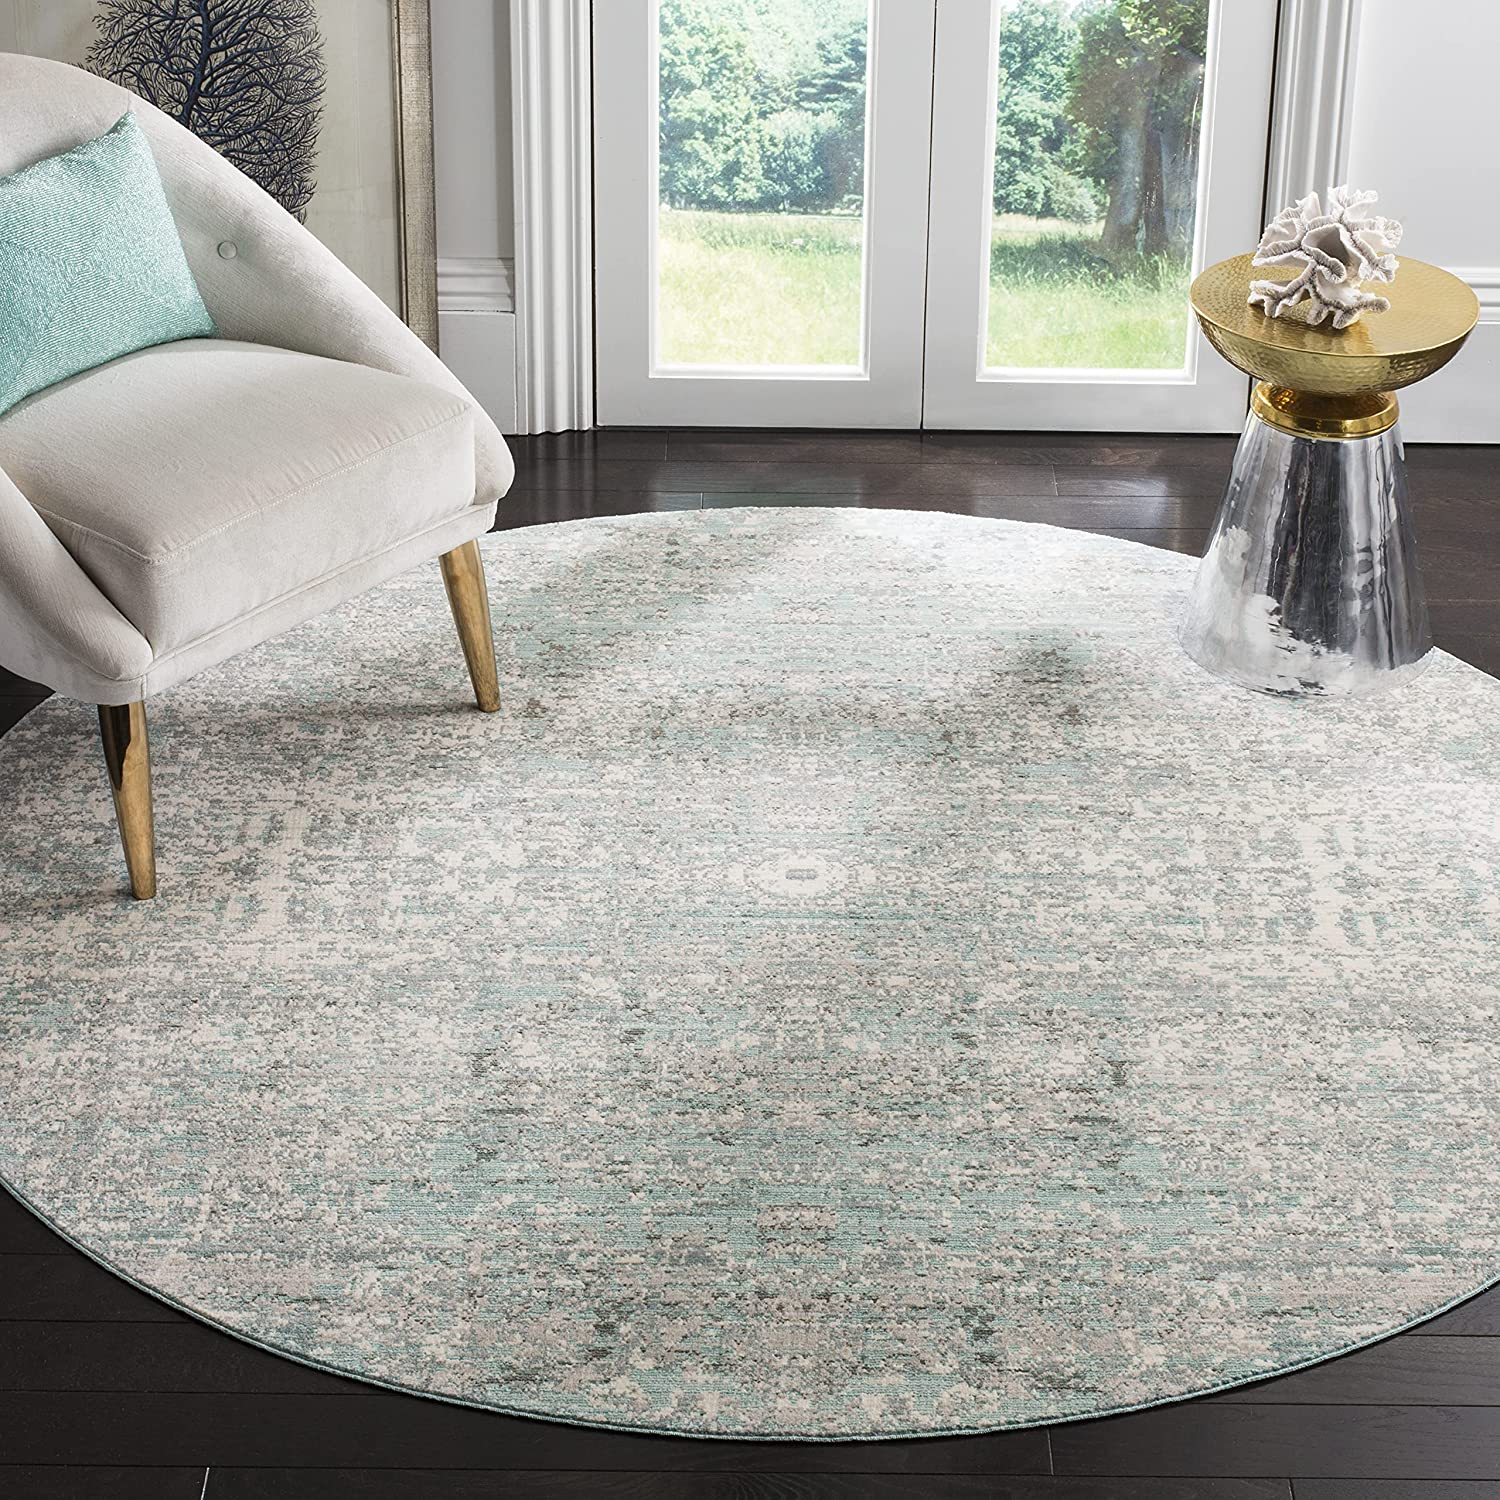 Safavieh Mystique Collection MYS971A Manufacturer regenerated product Indianapolis Mall Abstract Distressed Modern